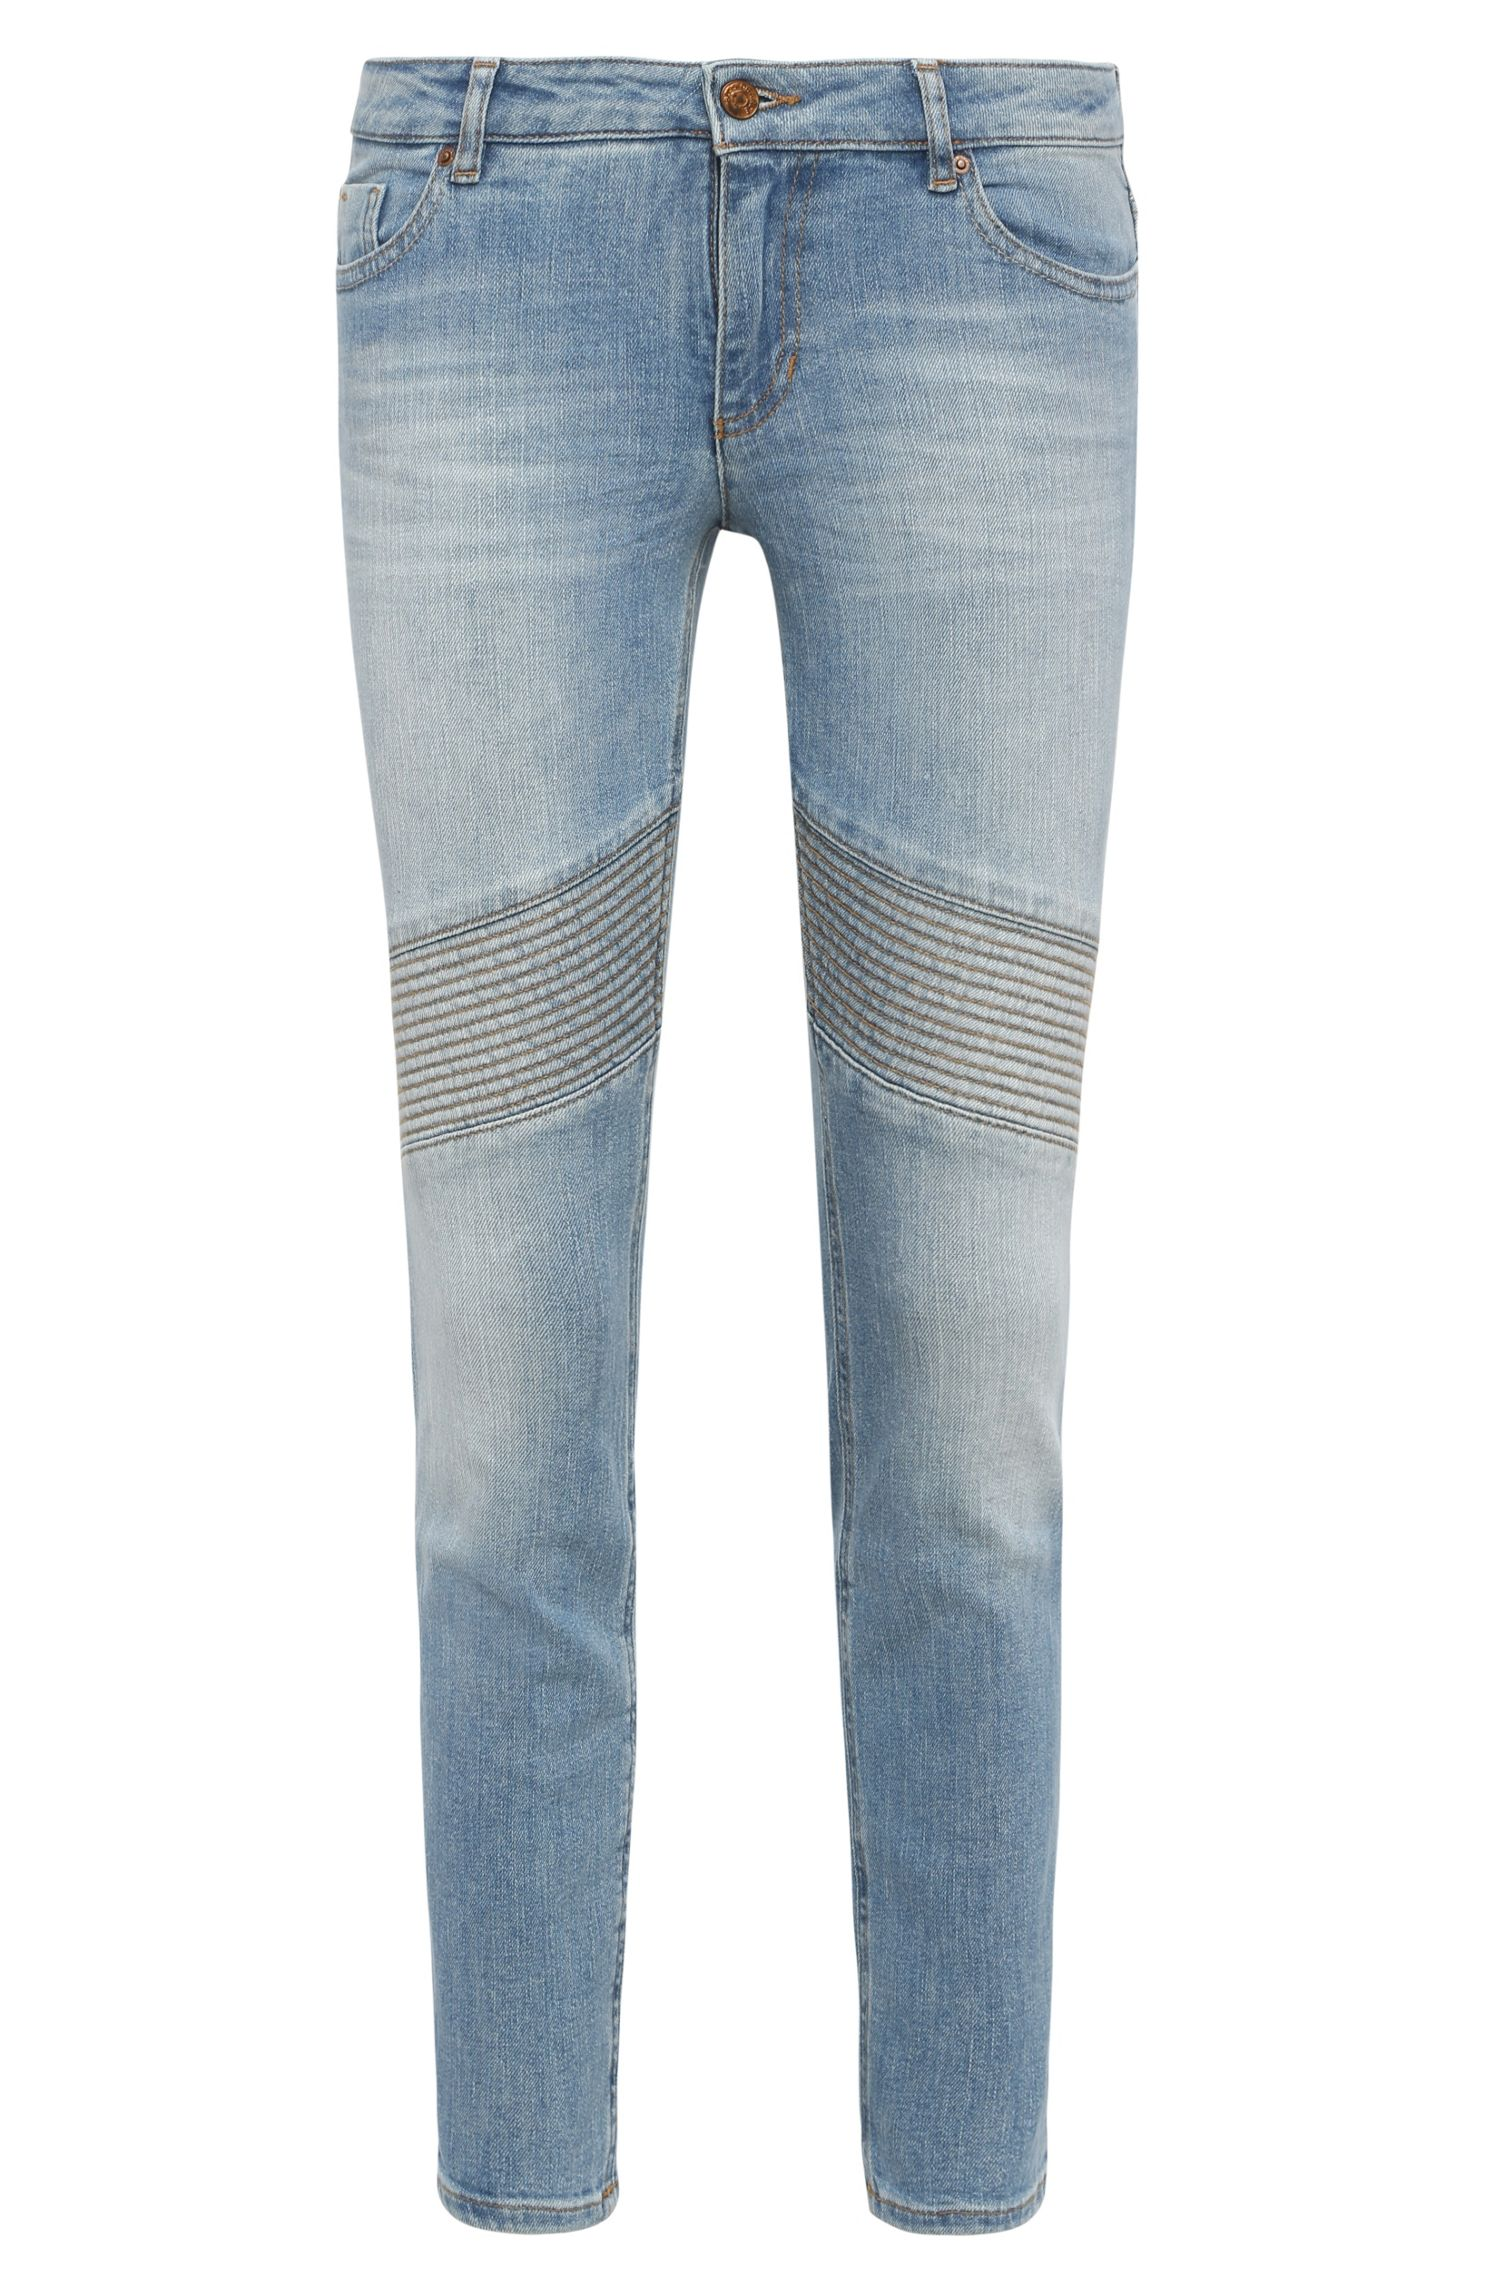 Slim-Fit Jeans aus Baumwoll-Mix mit Elasthan-Anteil: ´Orange J20 Oslo`